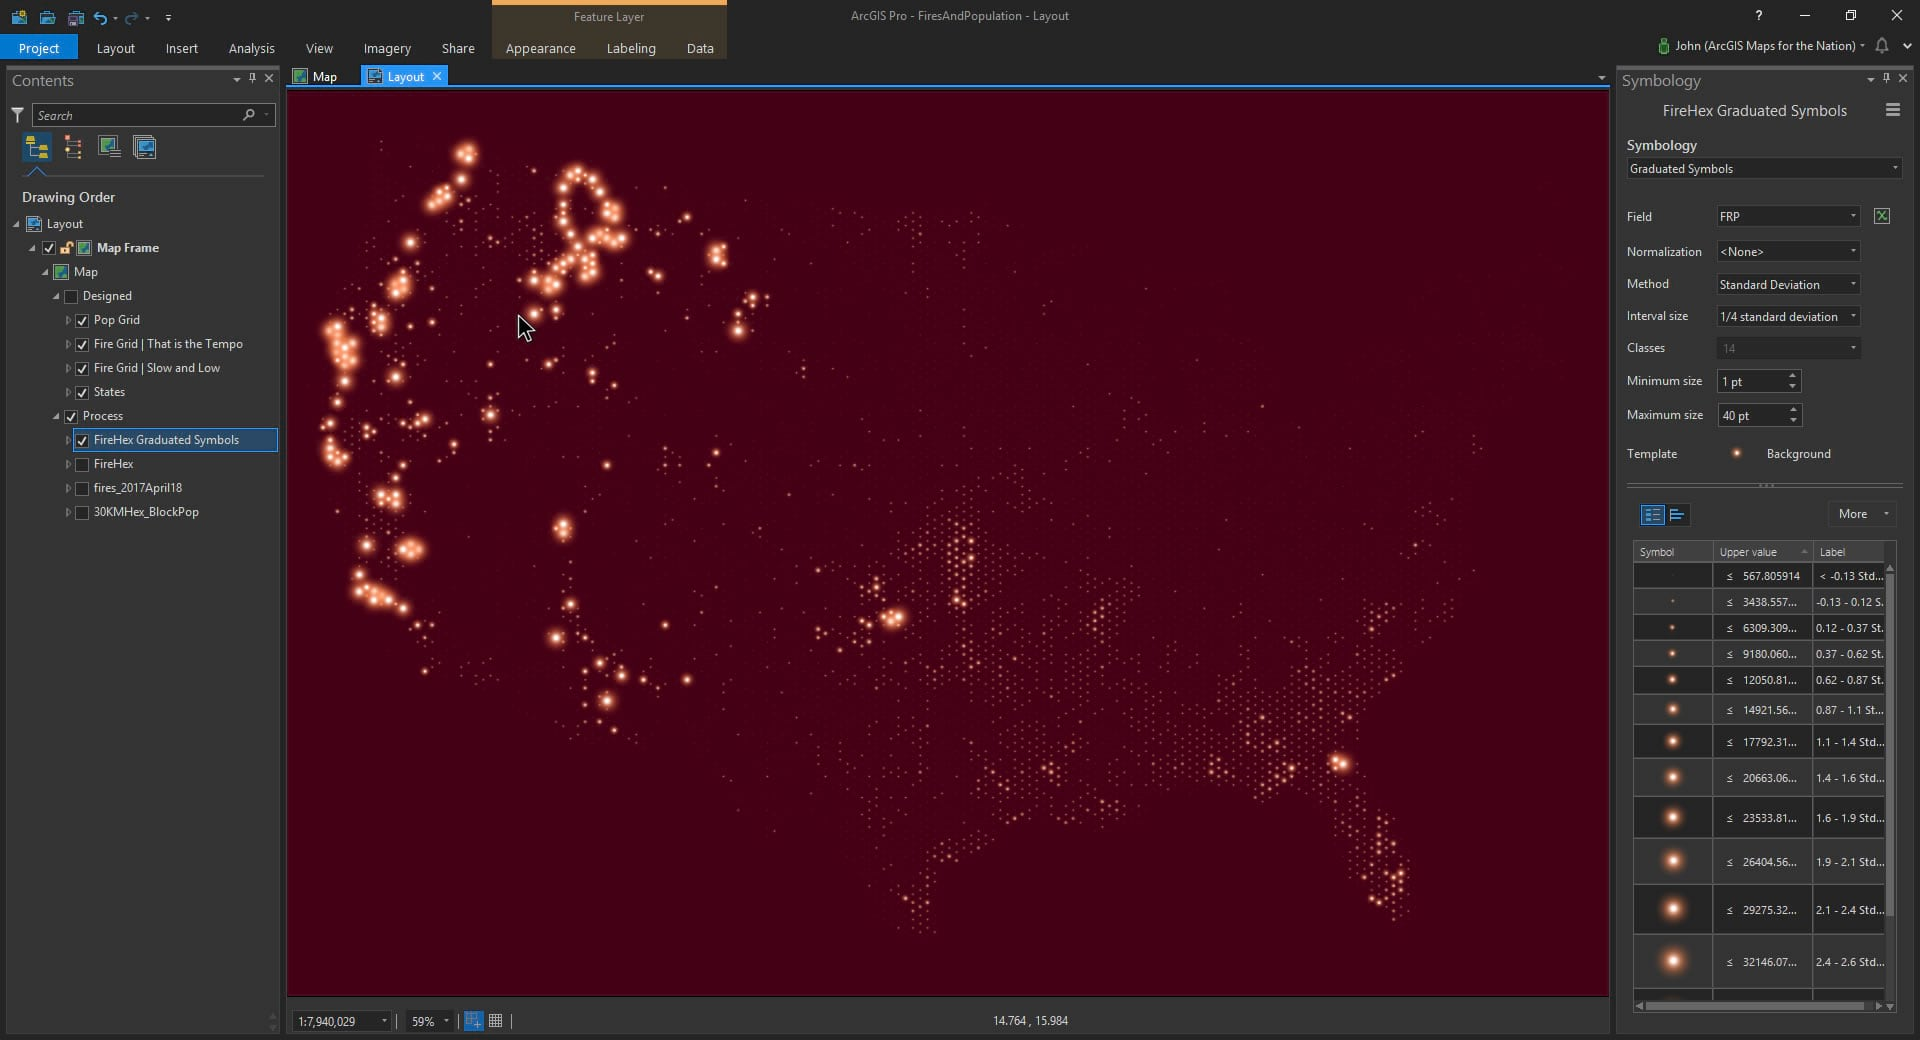 Context Mapping Fires And Population